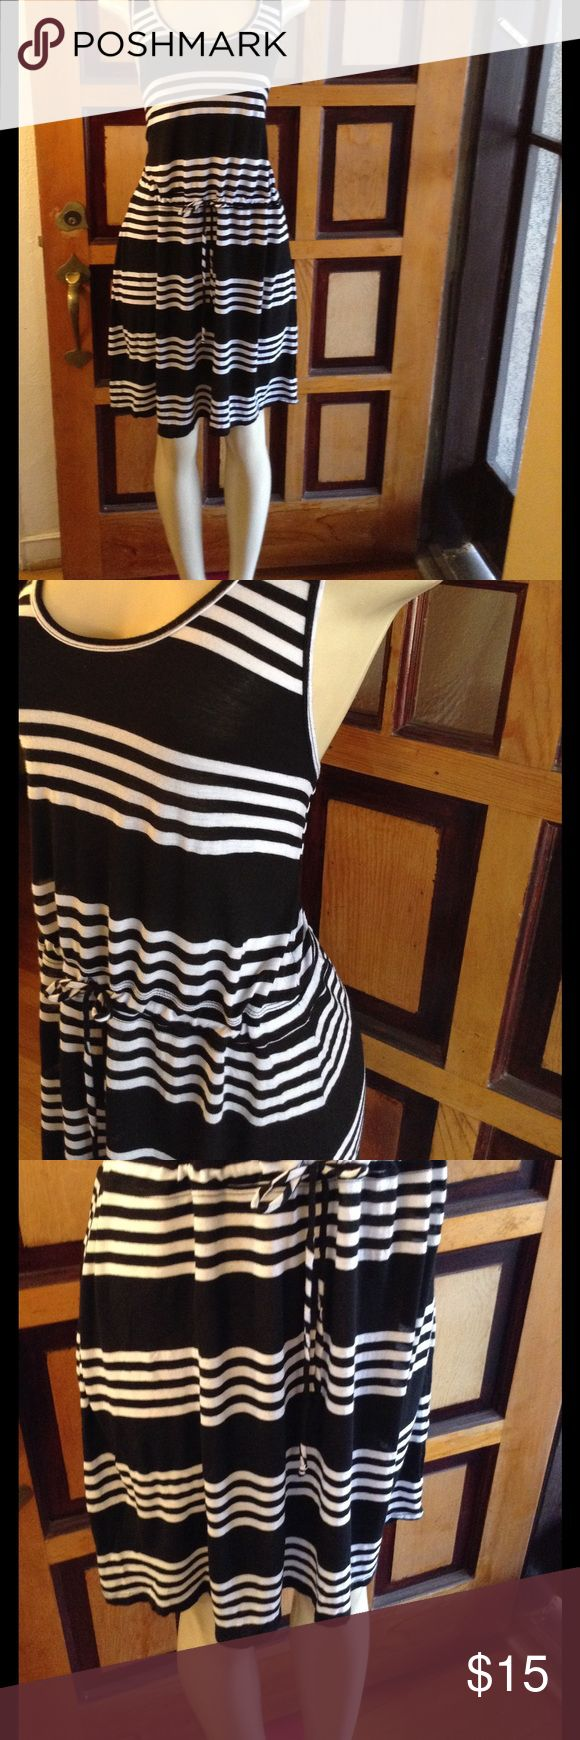 "Apt. 9 summer dress Cute black and white striped dress.  Drawstring waist, razor back.  Very comfy stretchy fabric.  Measures 20"" bust, 39"" length.  Perfect for weekend wear.  In good condition.  Size M.  Please use offer to negotiate.  No holds and no trades, Bundle and save. Apt. 9 Dresses"